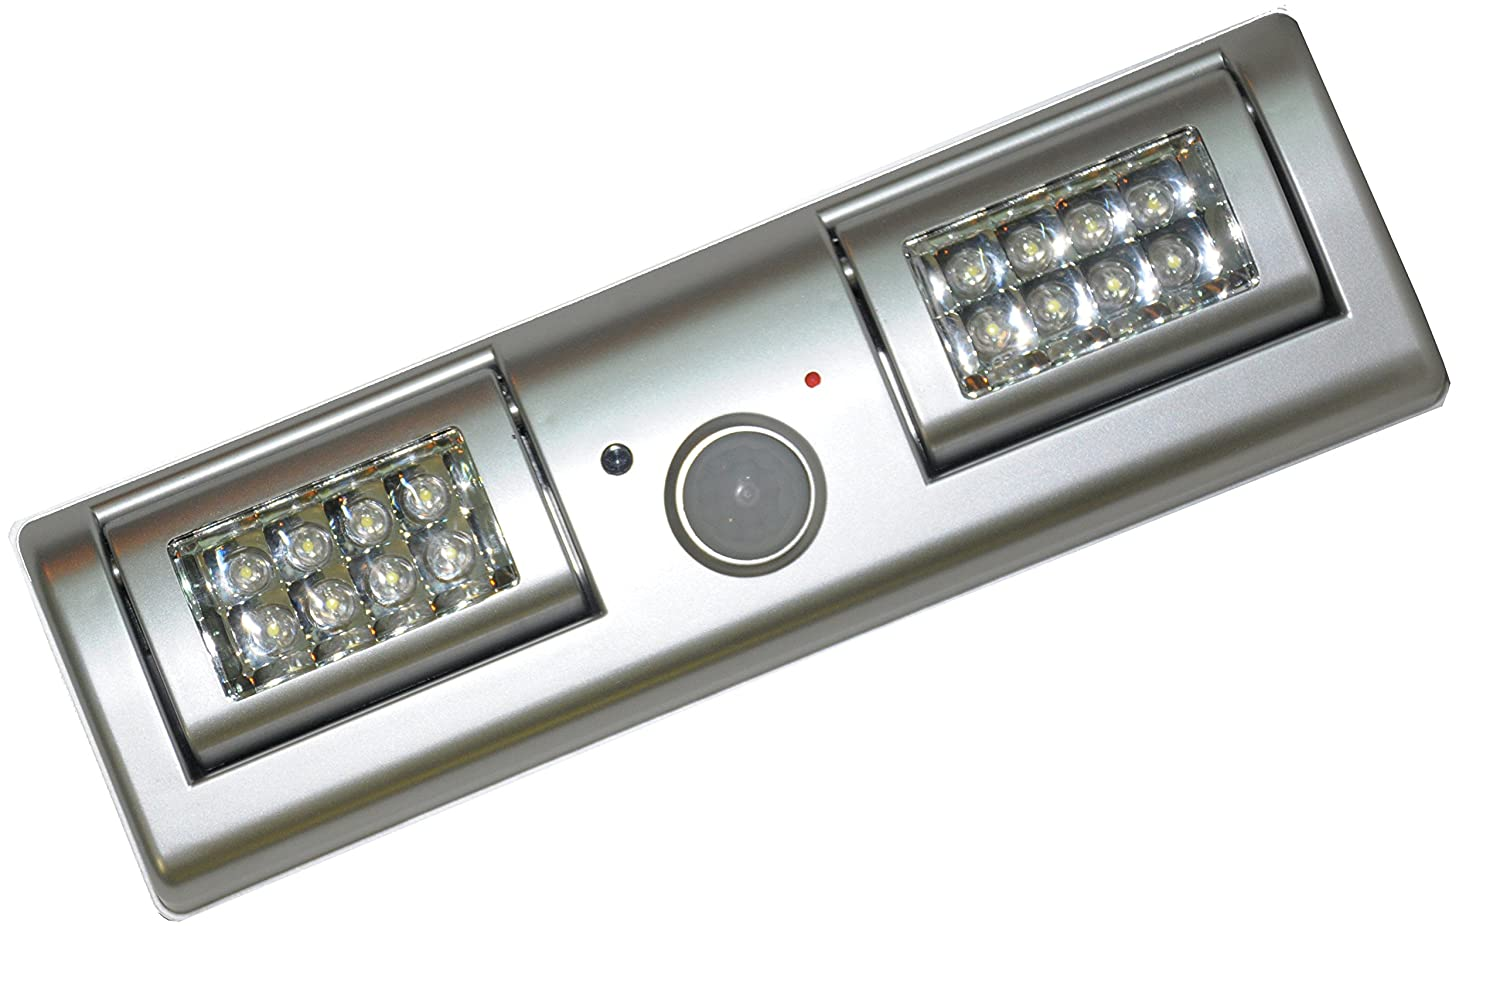 SleekLighting 16 LED Motion Sensor Closet Light The Light Panels Can Be  Adjusted 90 Degrees Battery Powered Batteries Included     Amazon.com